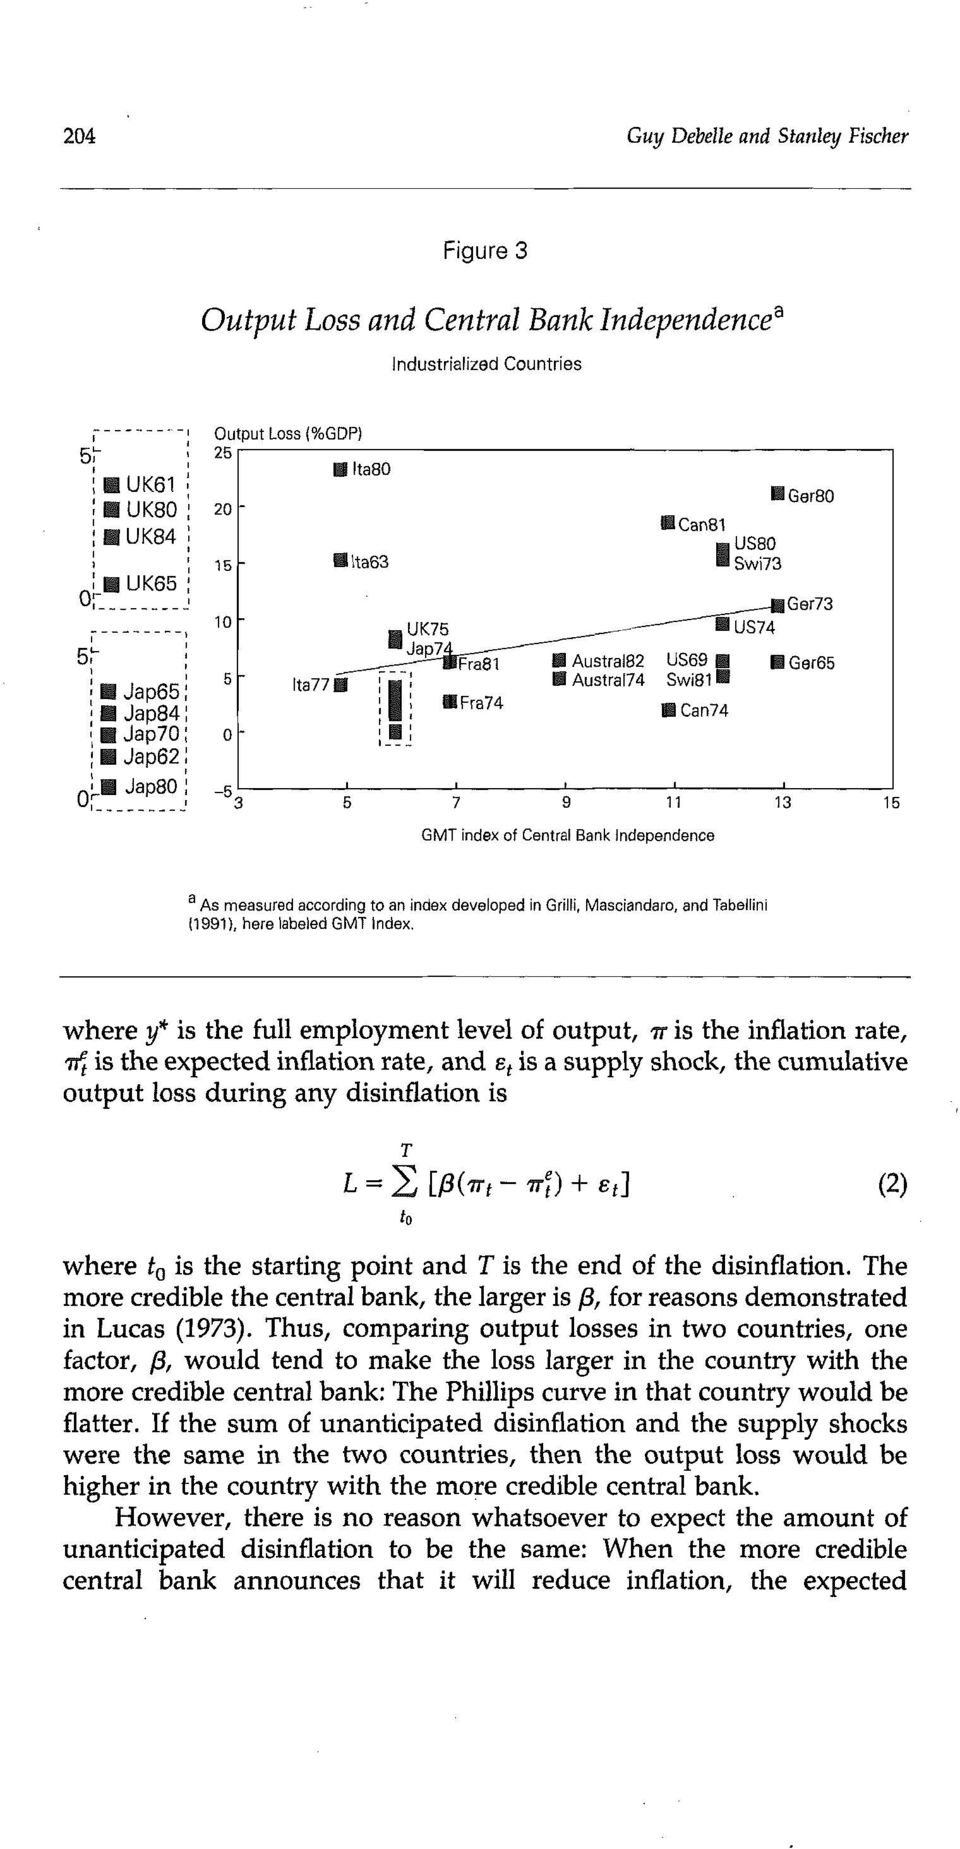 to an index developed in Grilli, Masciandaro, and Tabellini (1991), here labeled GMT Index, where y* is the full employment level of output, ~r is the inflation rate, ~t is the expected inflation